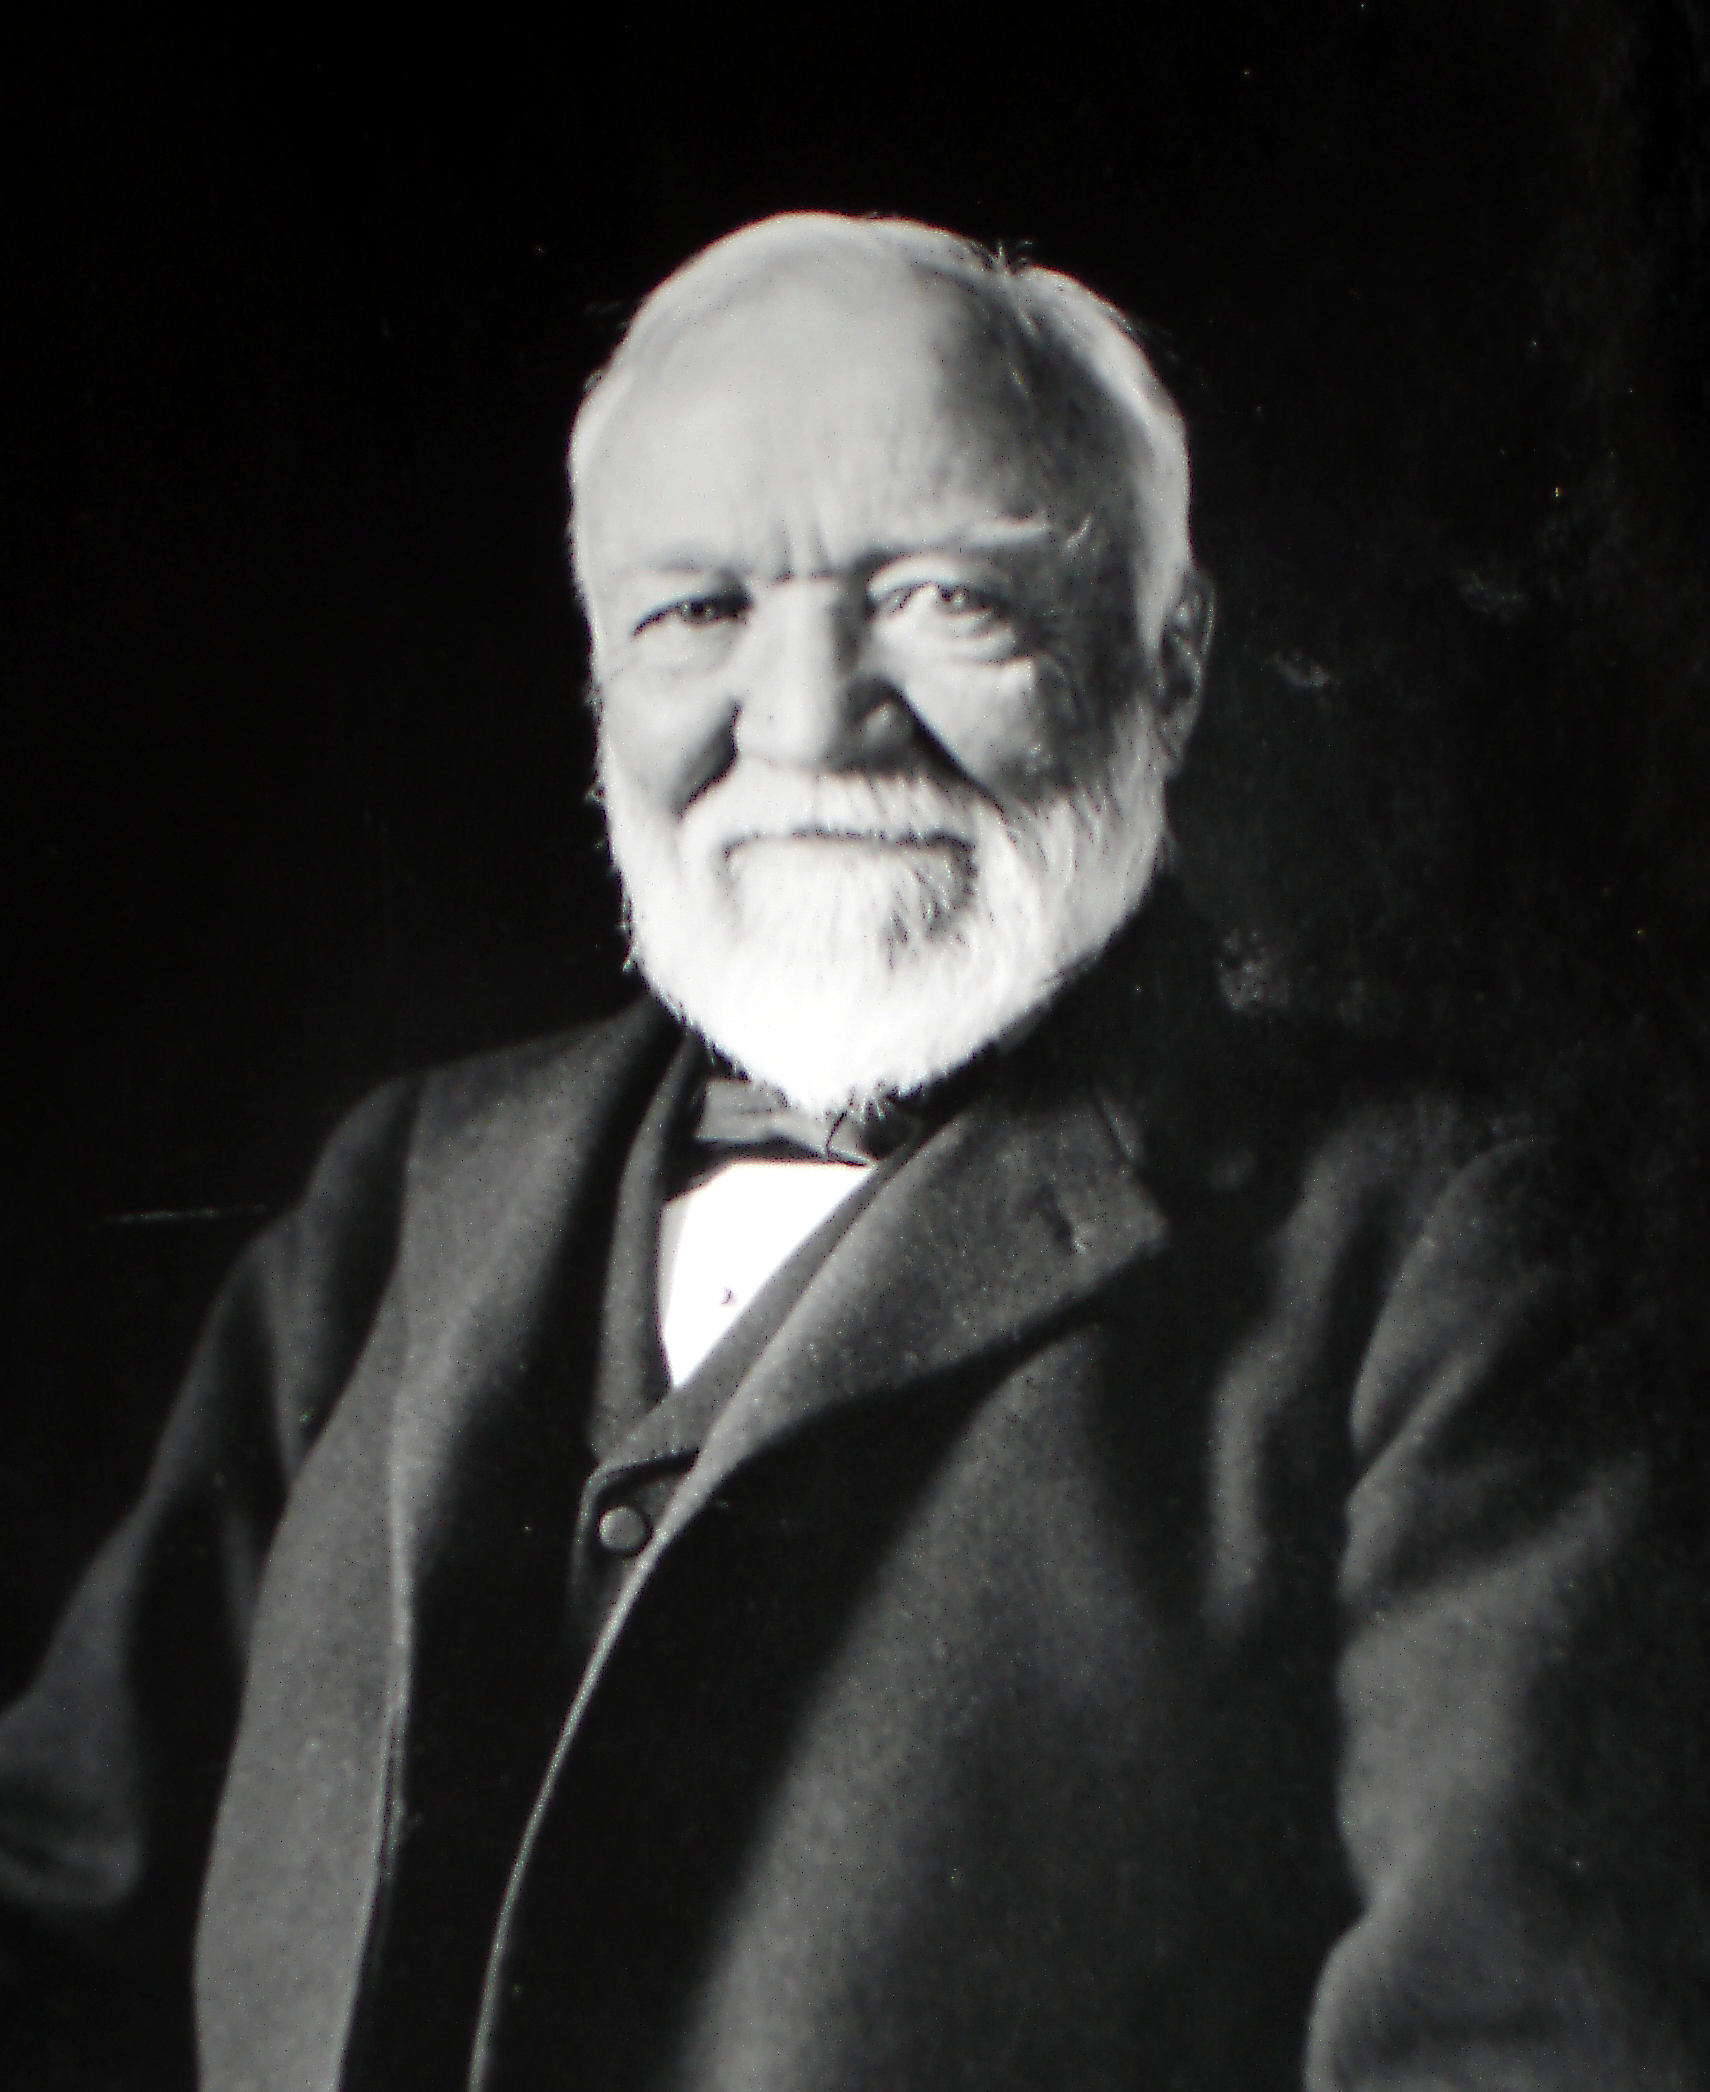 an introduction to the life of andrew carnegie Andrew carnegie was the self-made steel tycoon and philanthropist  synopsis  early life steel tycoon philanthropy videos related videos.